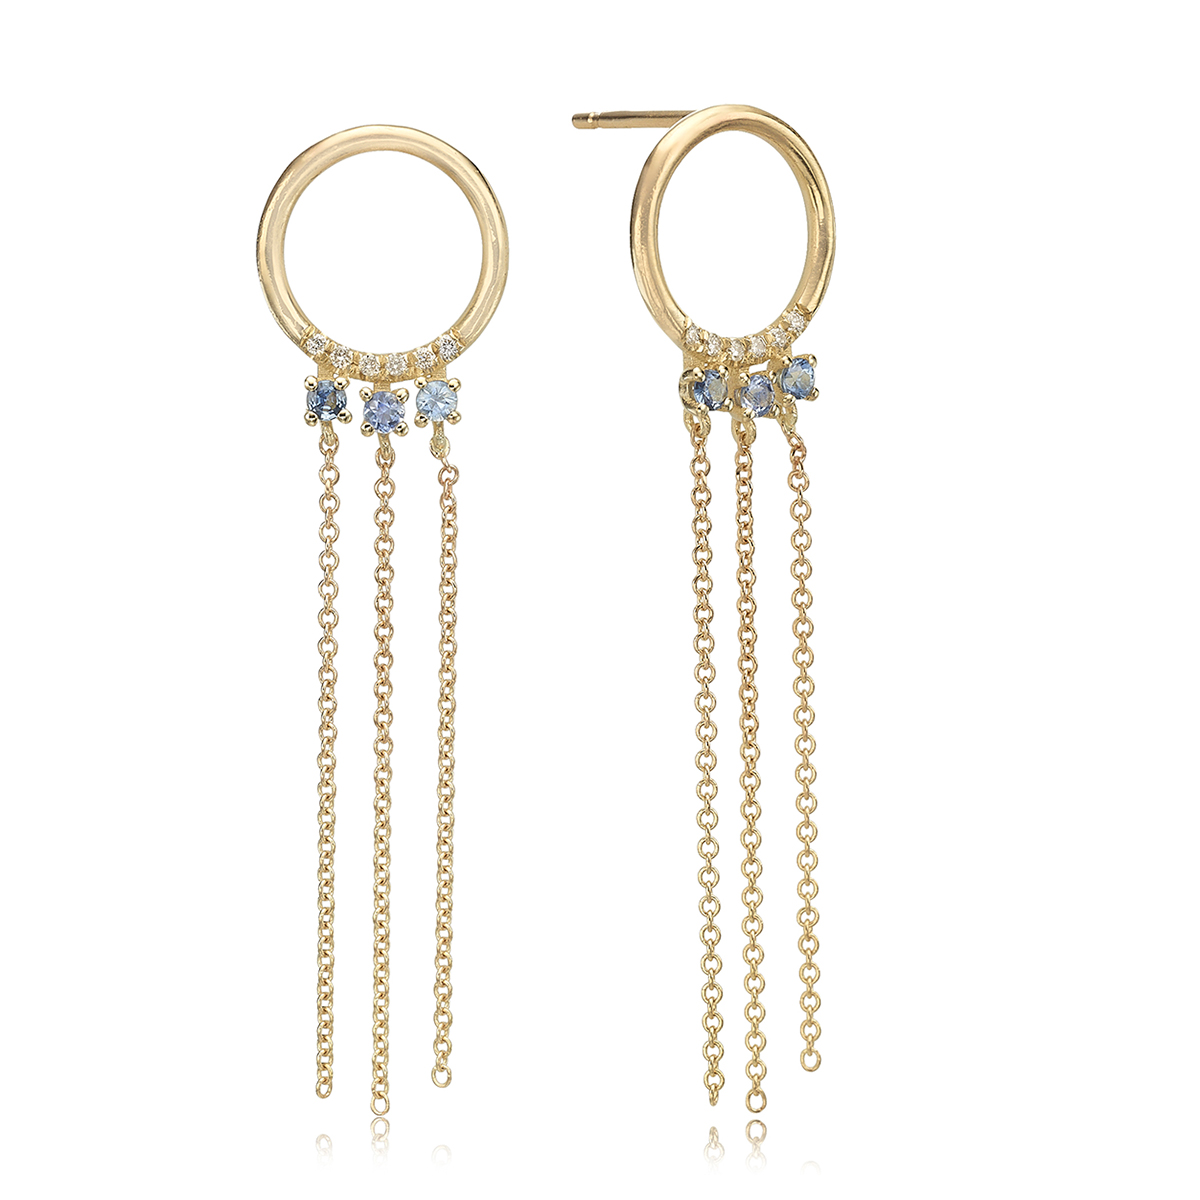 Diamons and sapphire gold chaine earrings